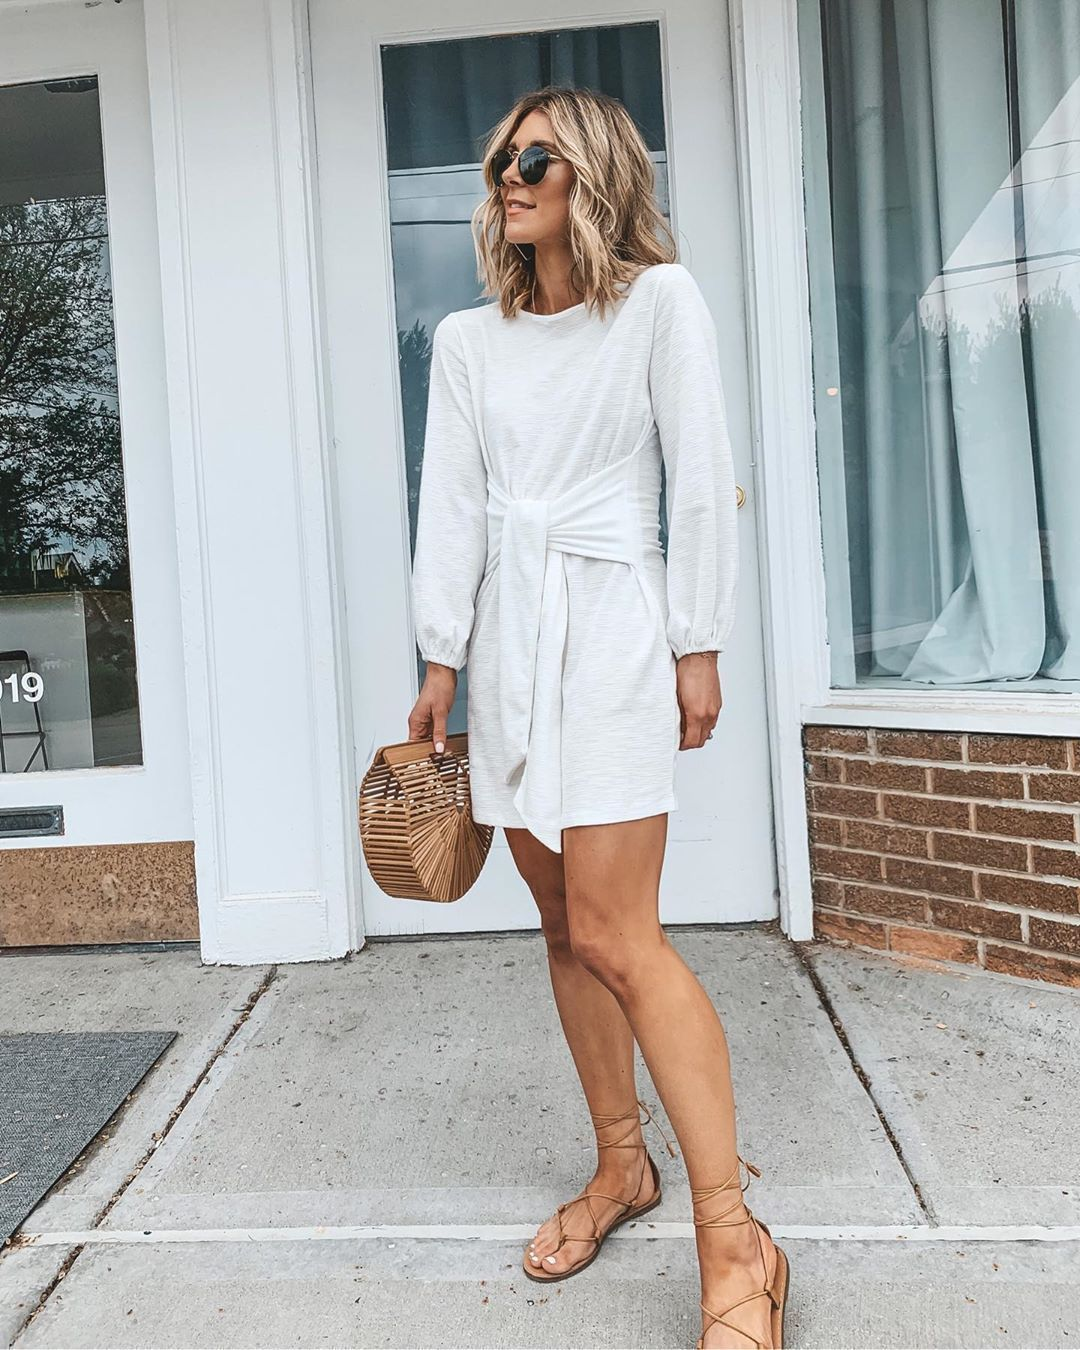 Get the dress for $24 at amazon.com – Wheretoget